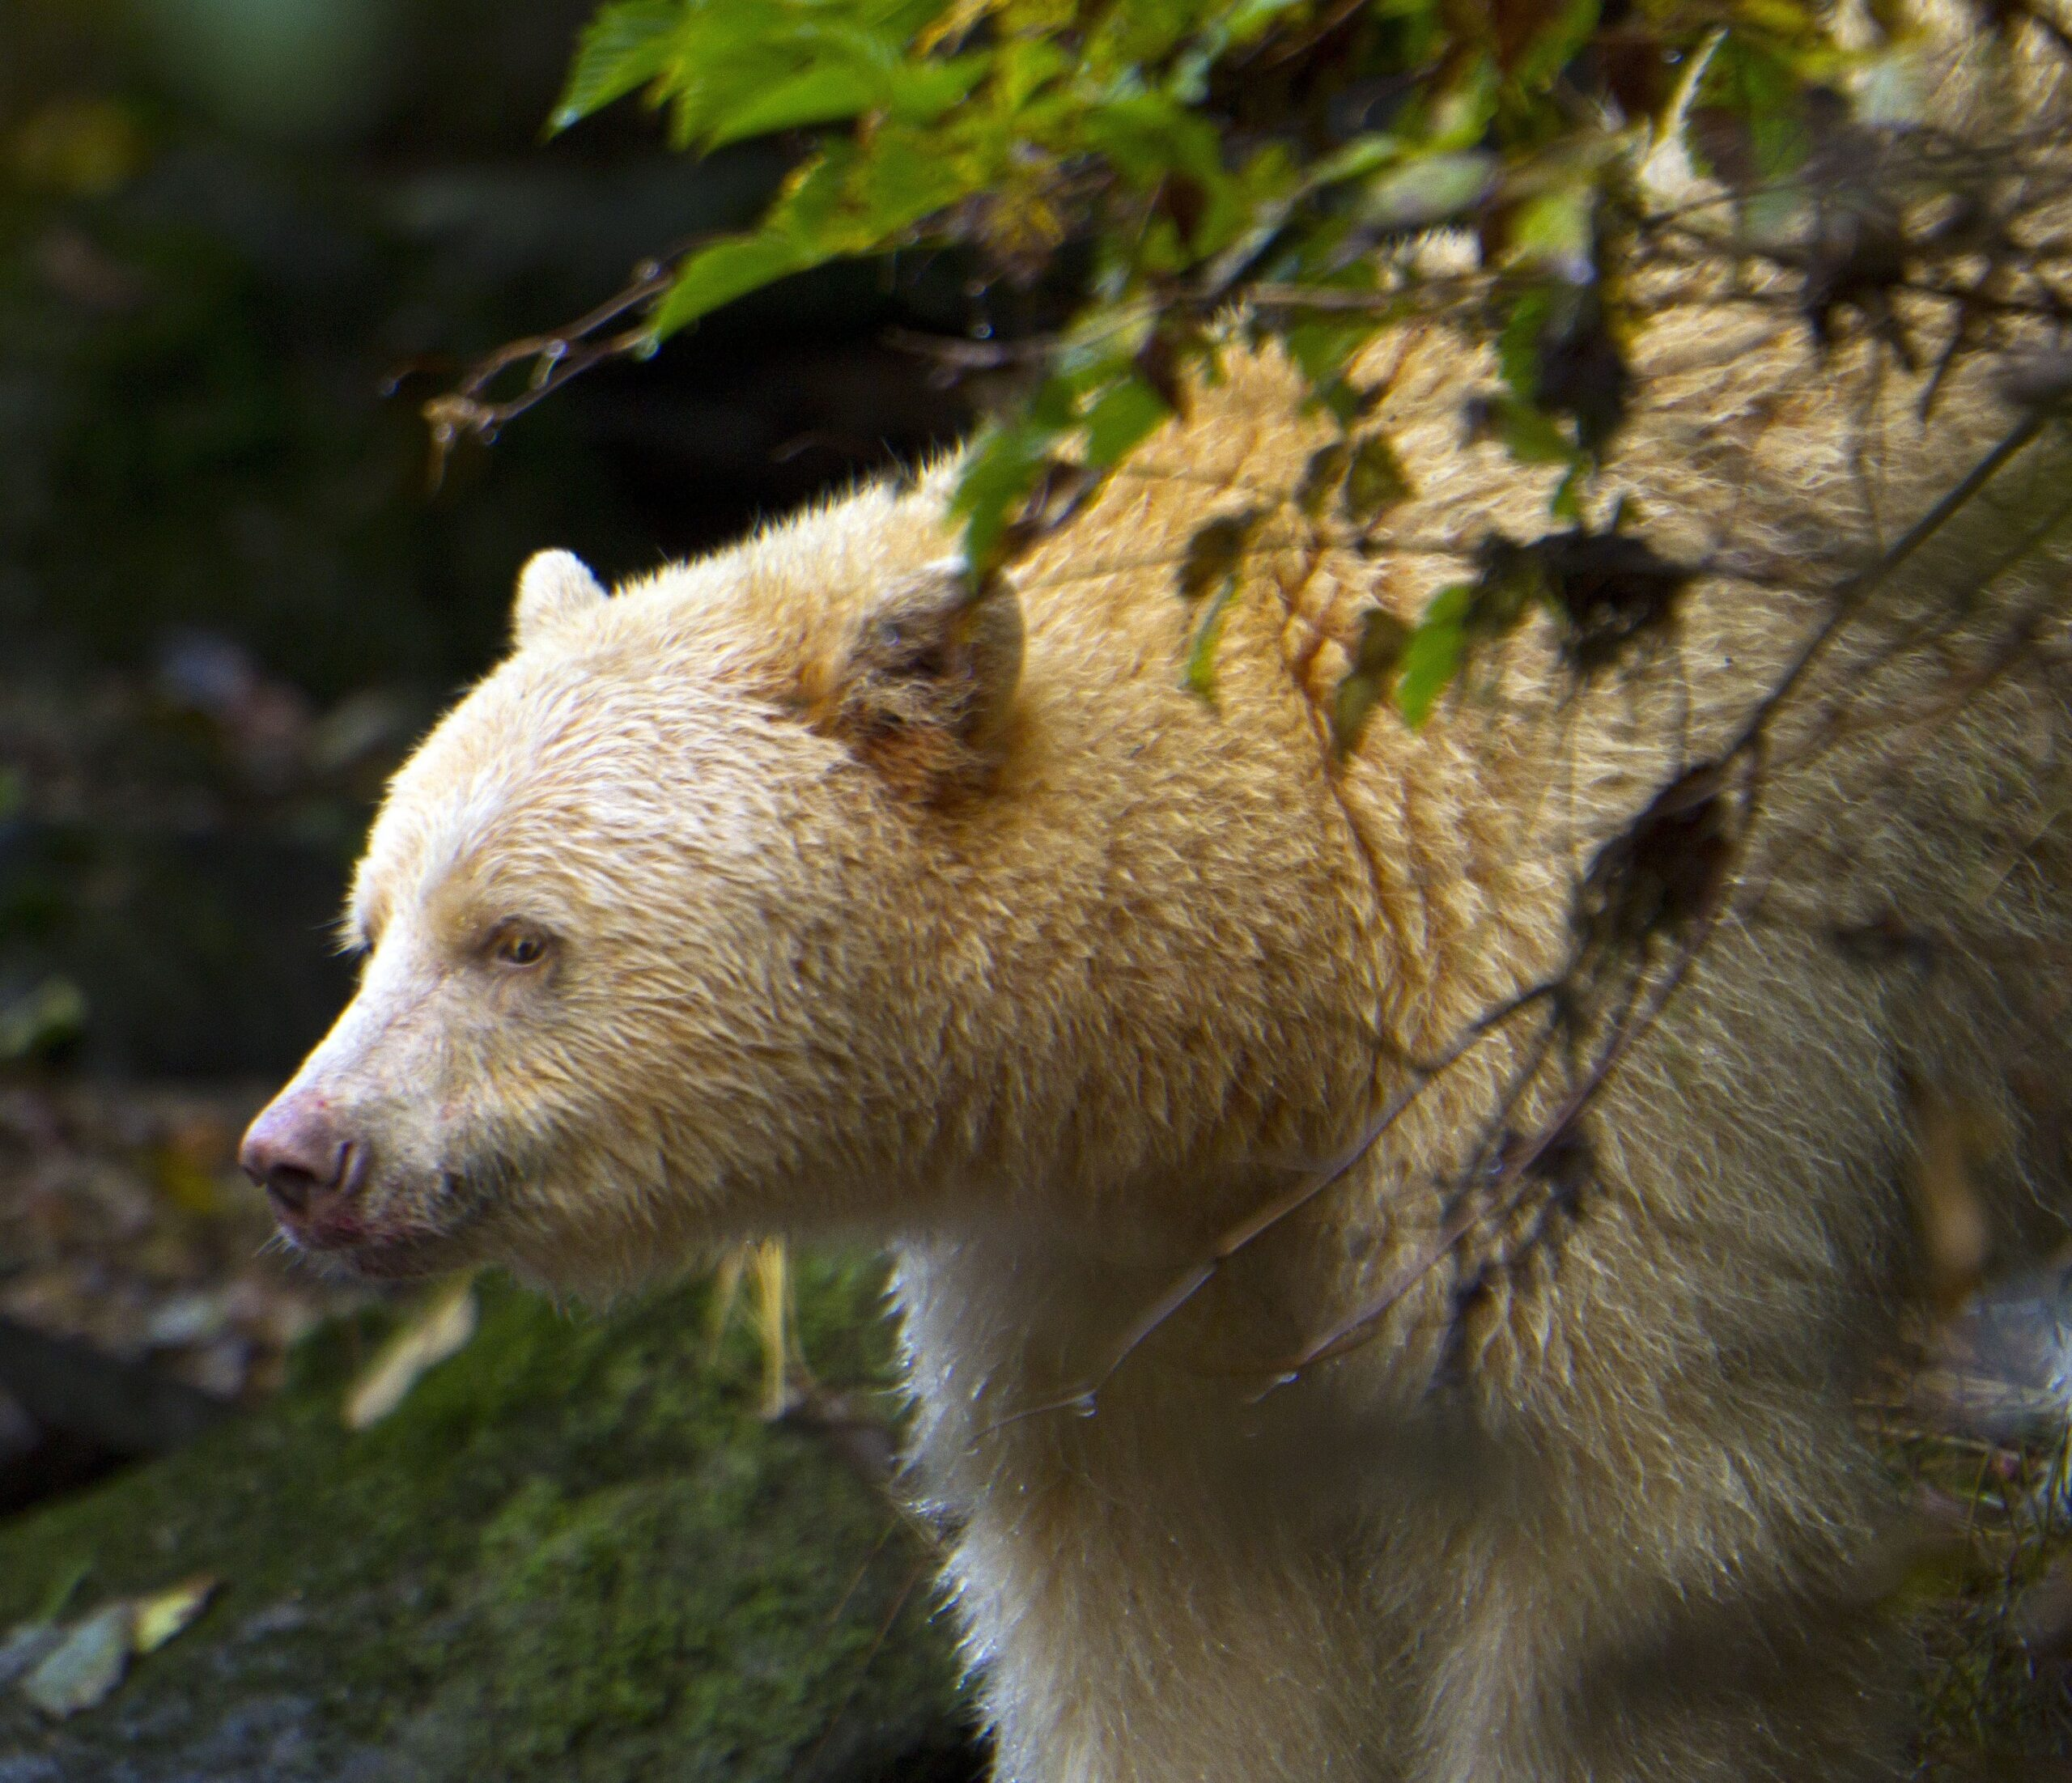 A white bear pokes out from behind a bush in the Great Bear Rainforest.